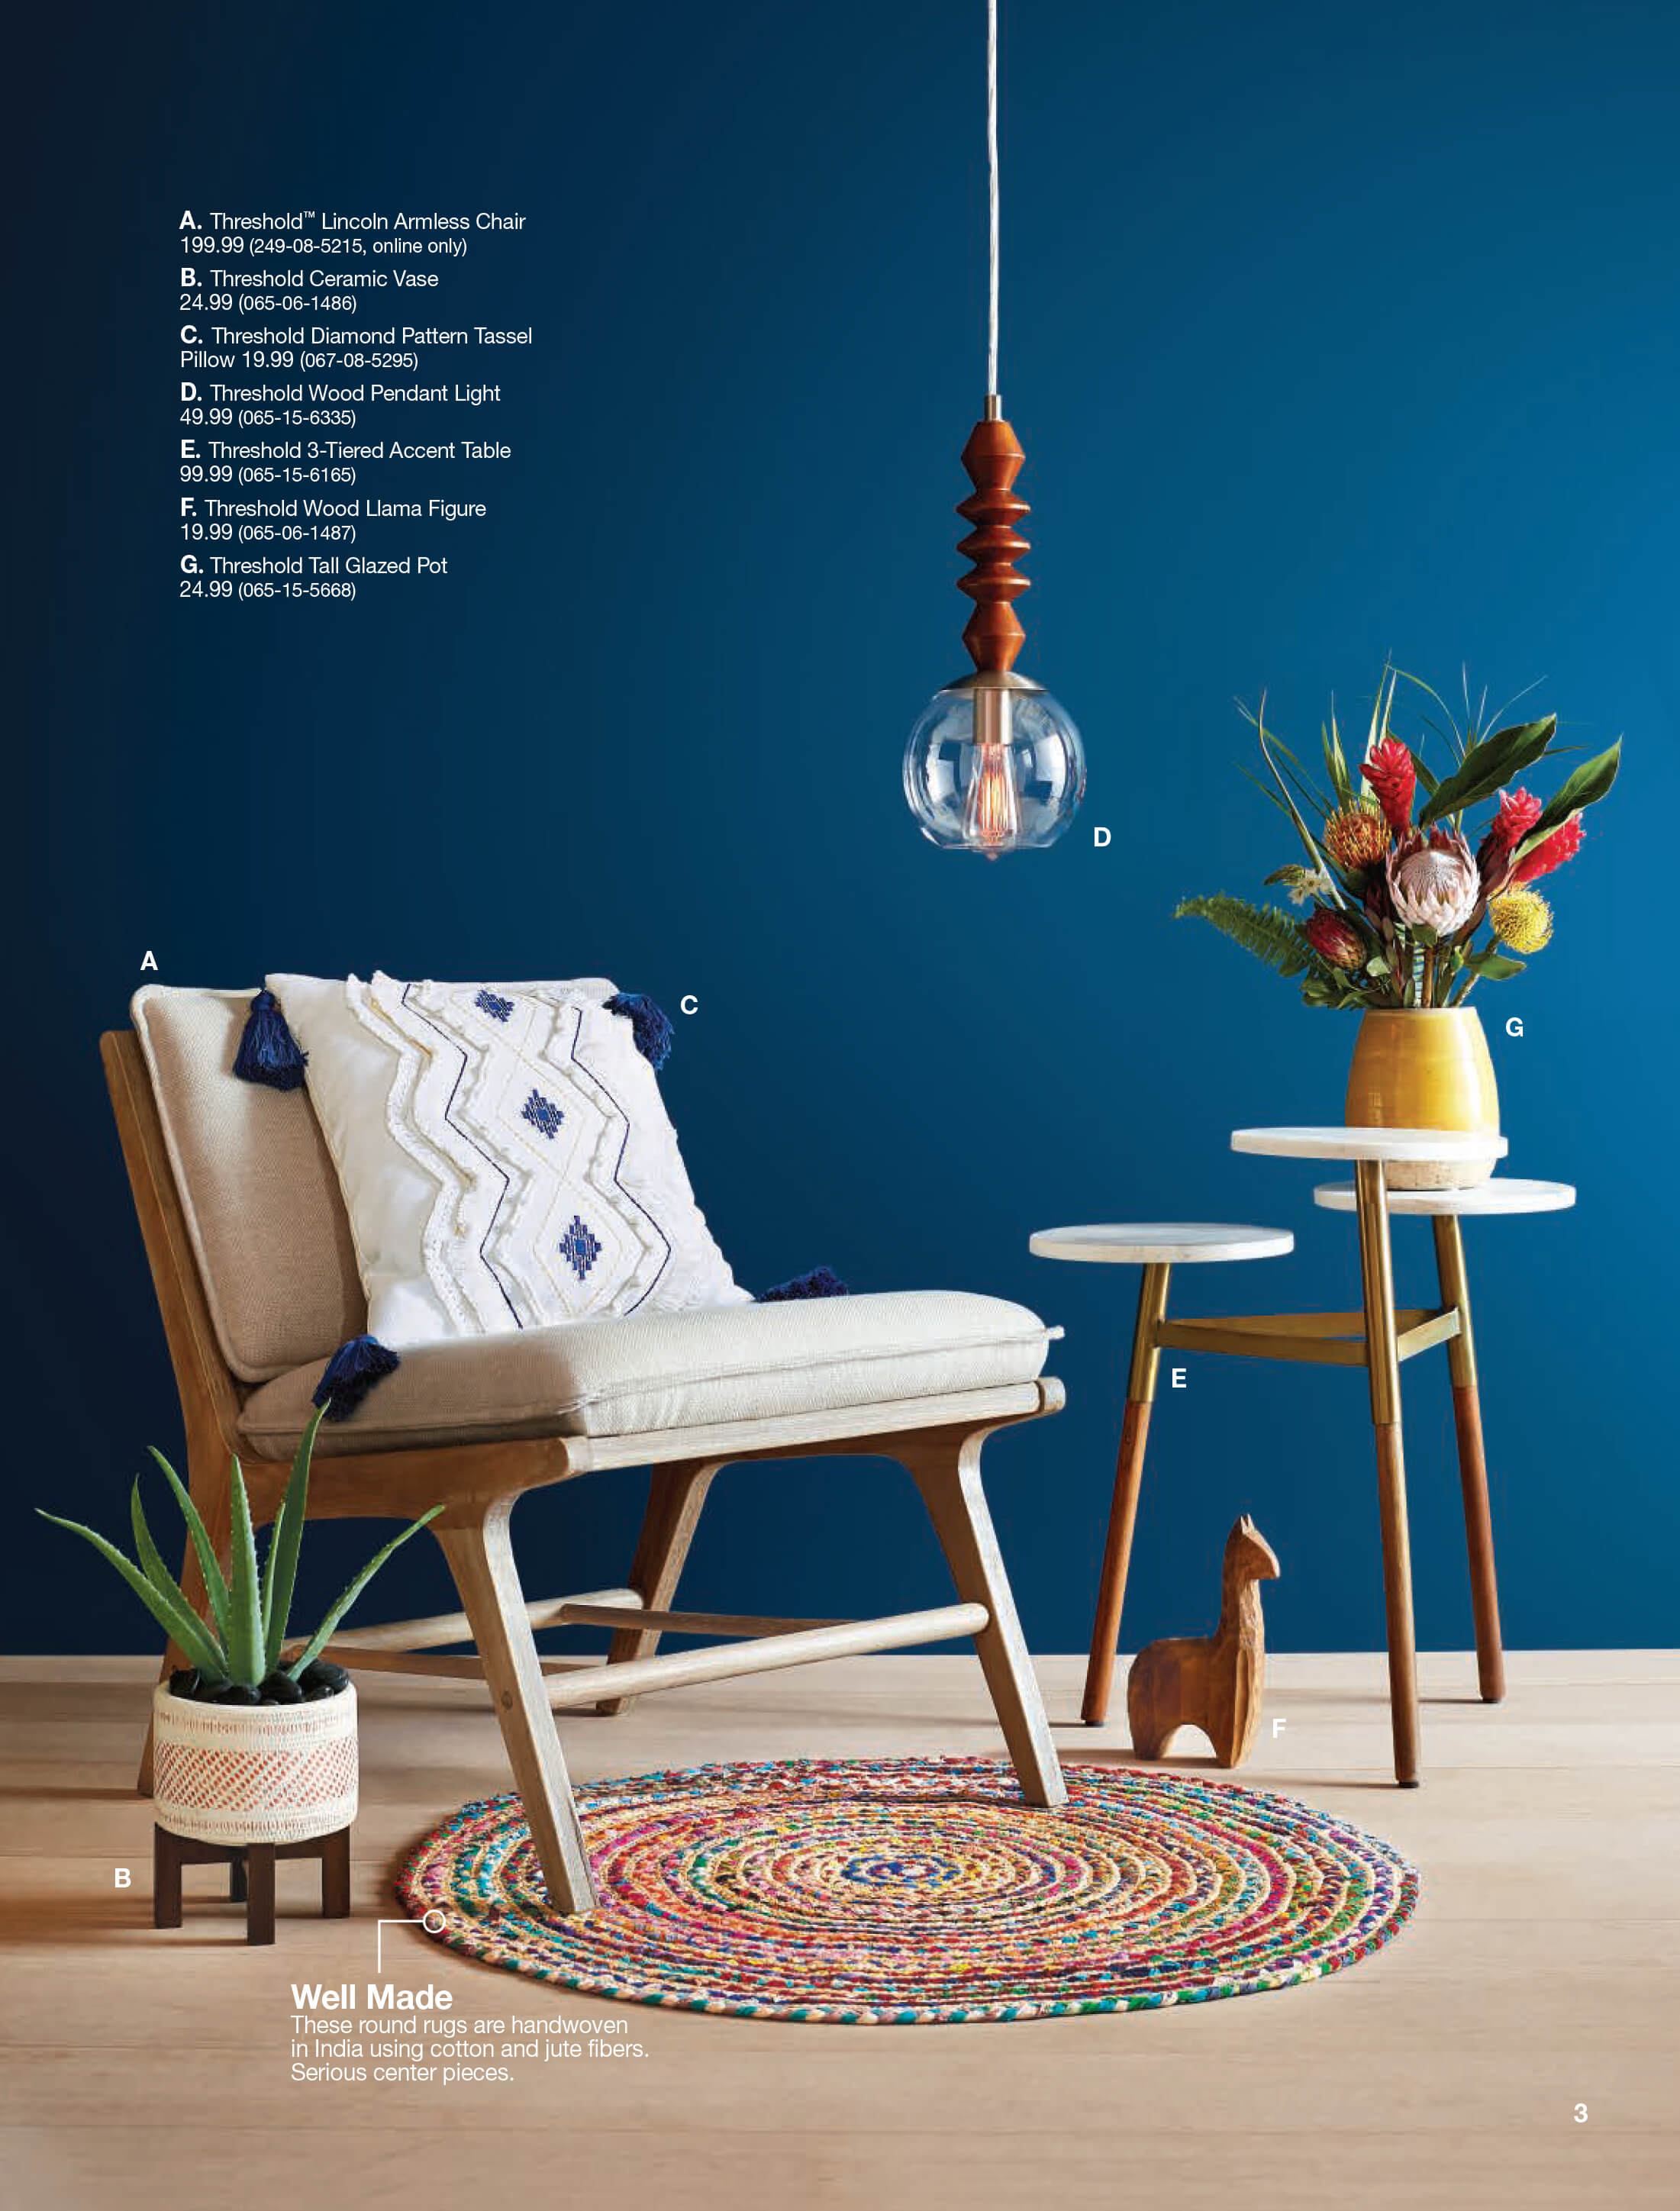 new target home product and emily henderson first look spring catalog cast metal accent table nate berkus white wicker side broyhill end tables homemade outdoor coffee patio vita